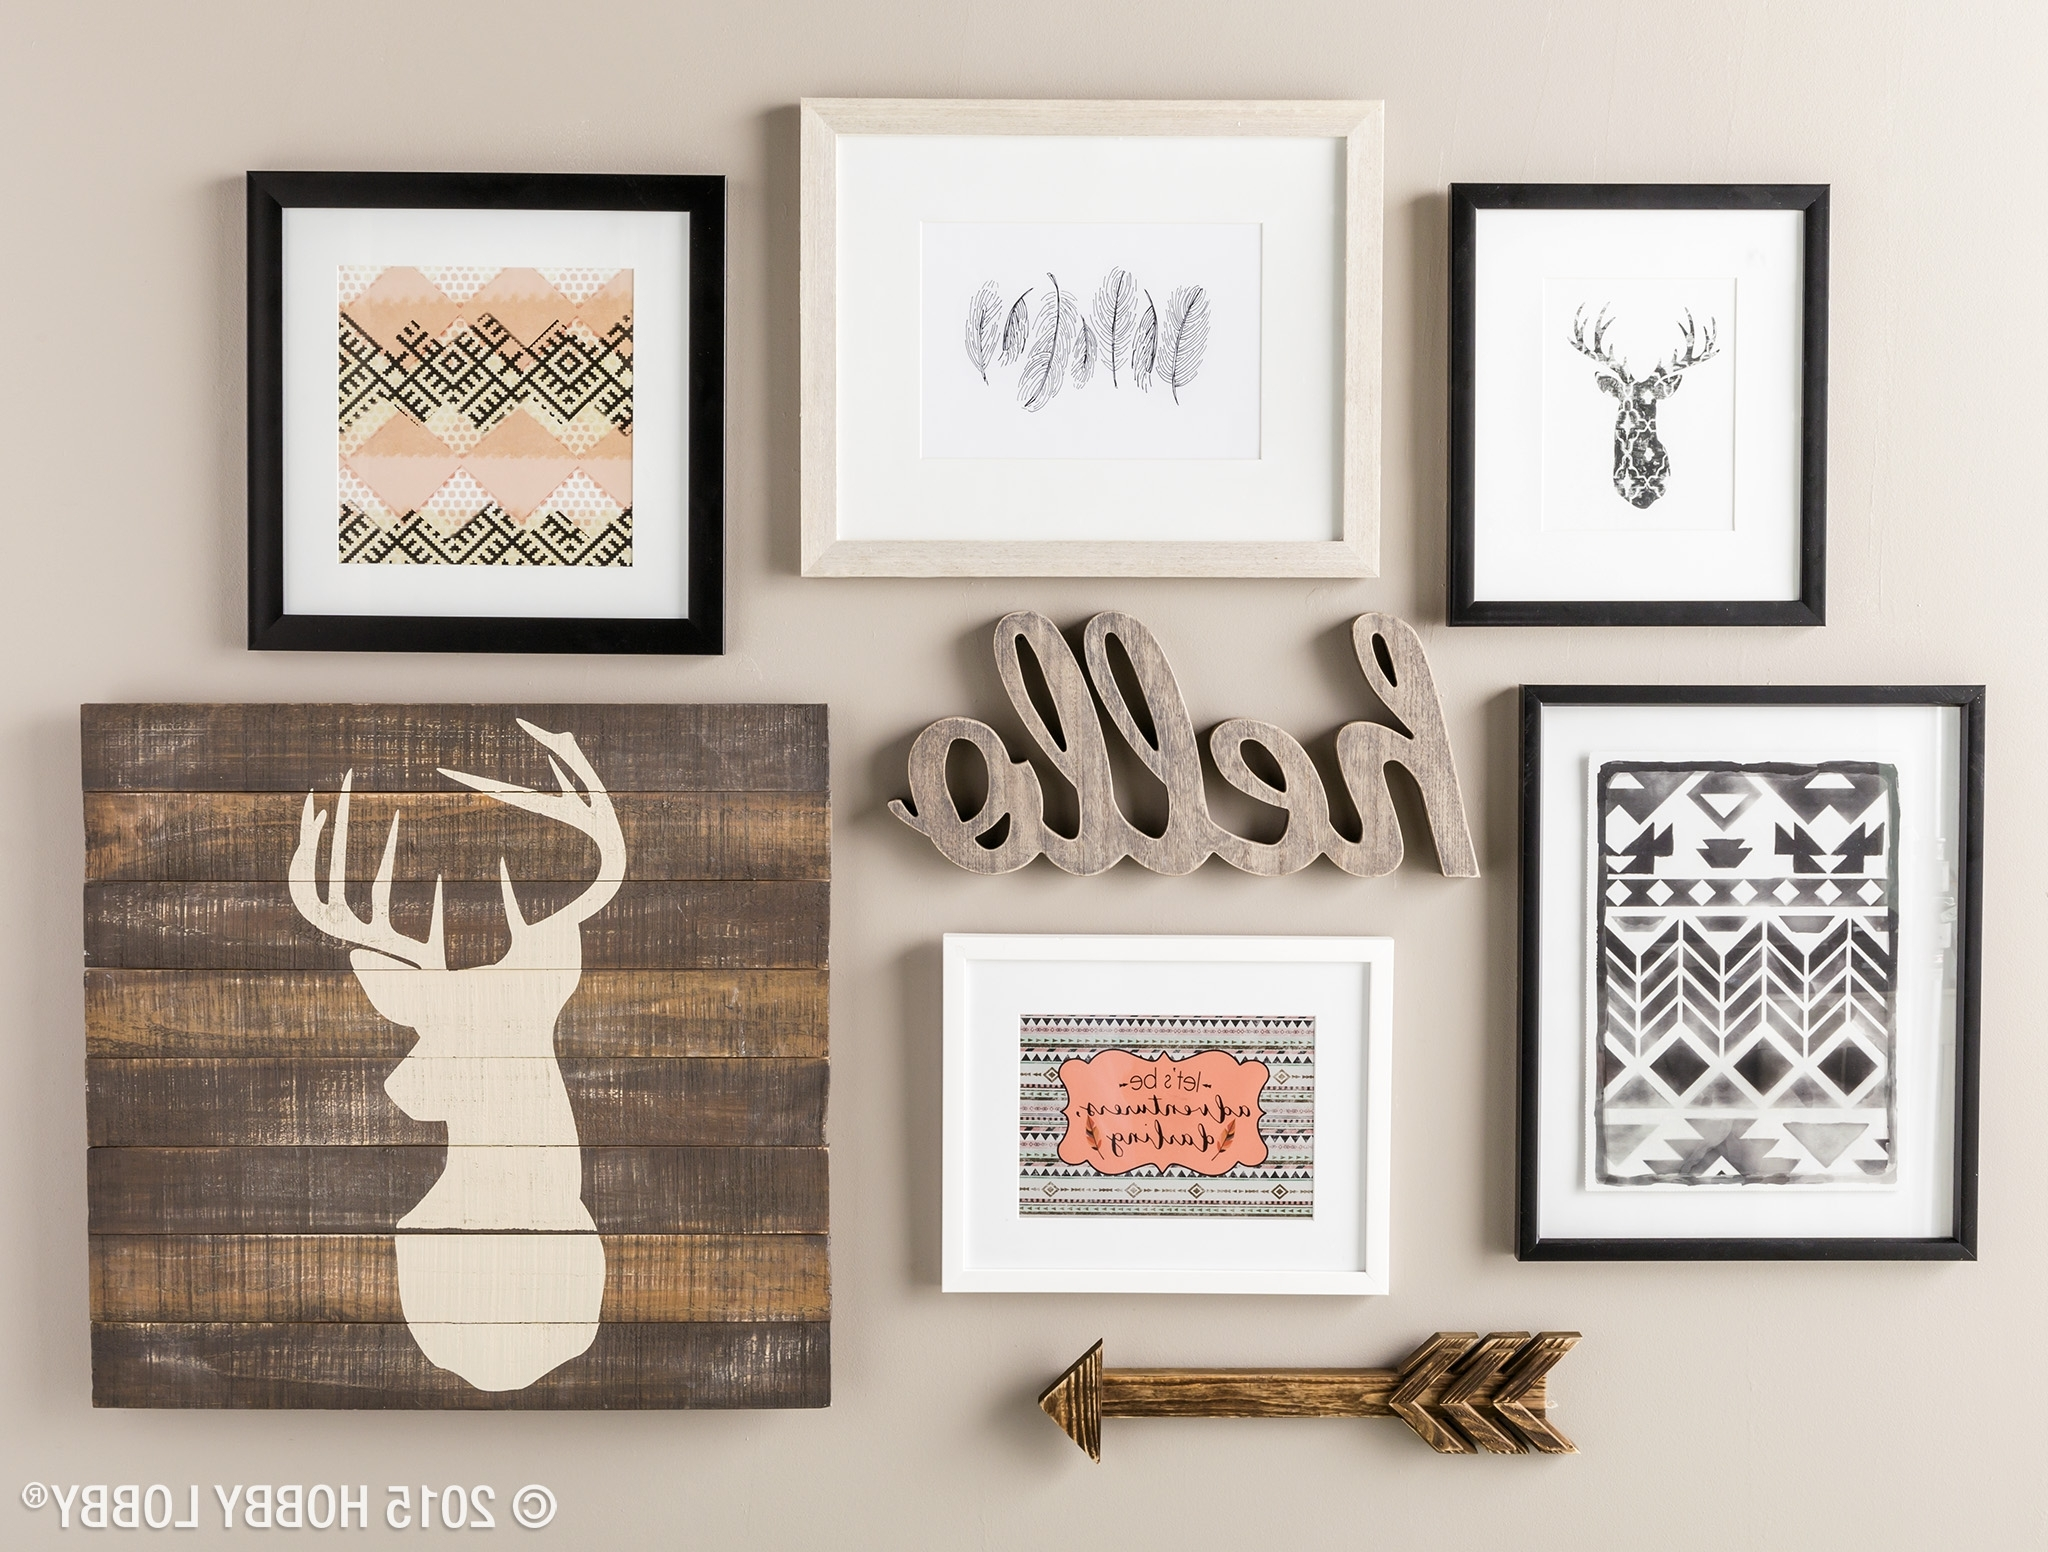 2017 Rustic Wall Accents Throughout Whether Your Style Is Kooky, Classic Or Rustic Chic, We've Got (View 1 of 15)